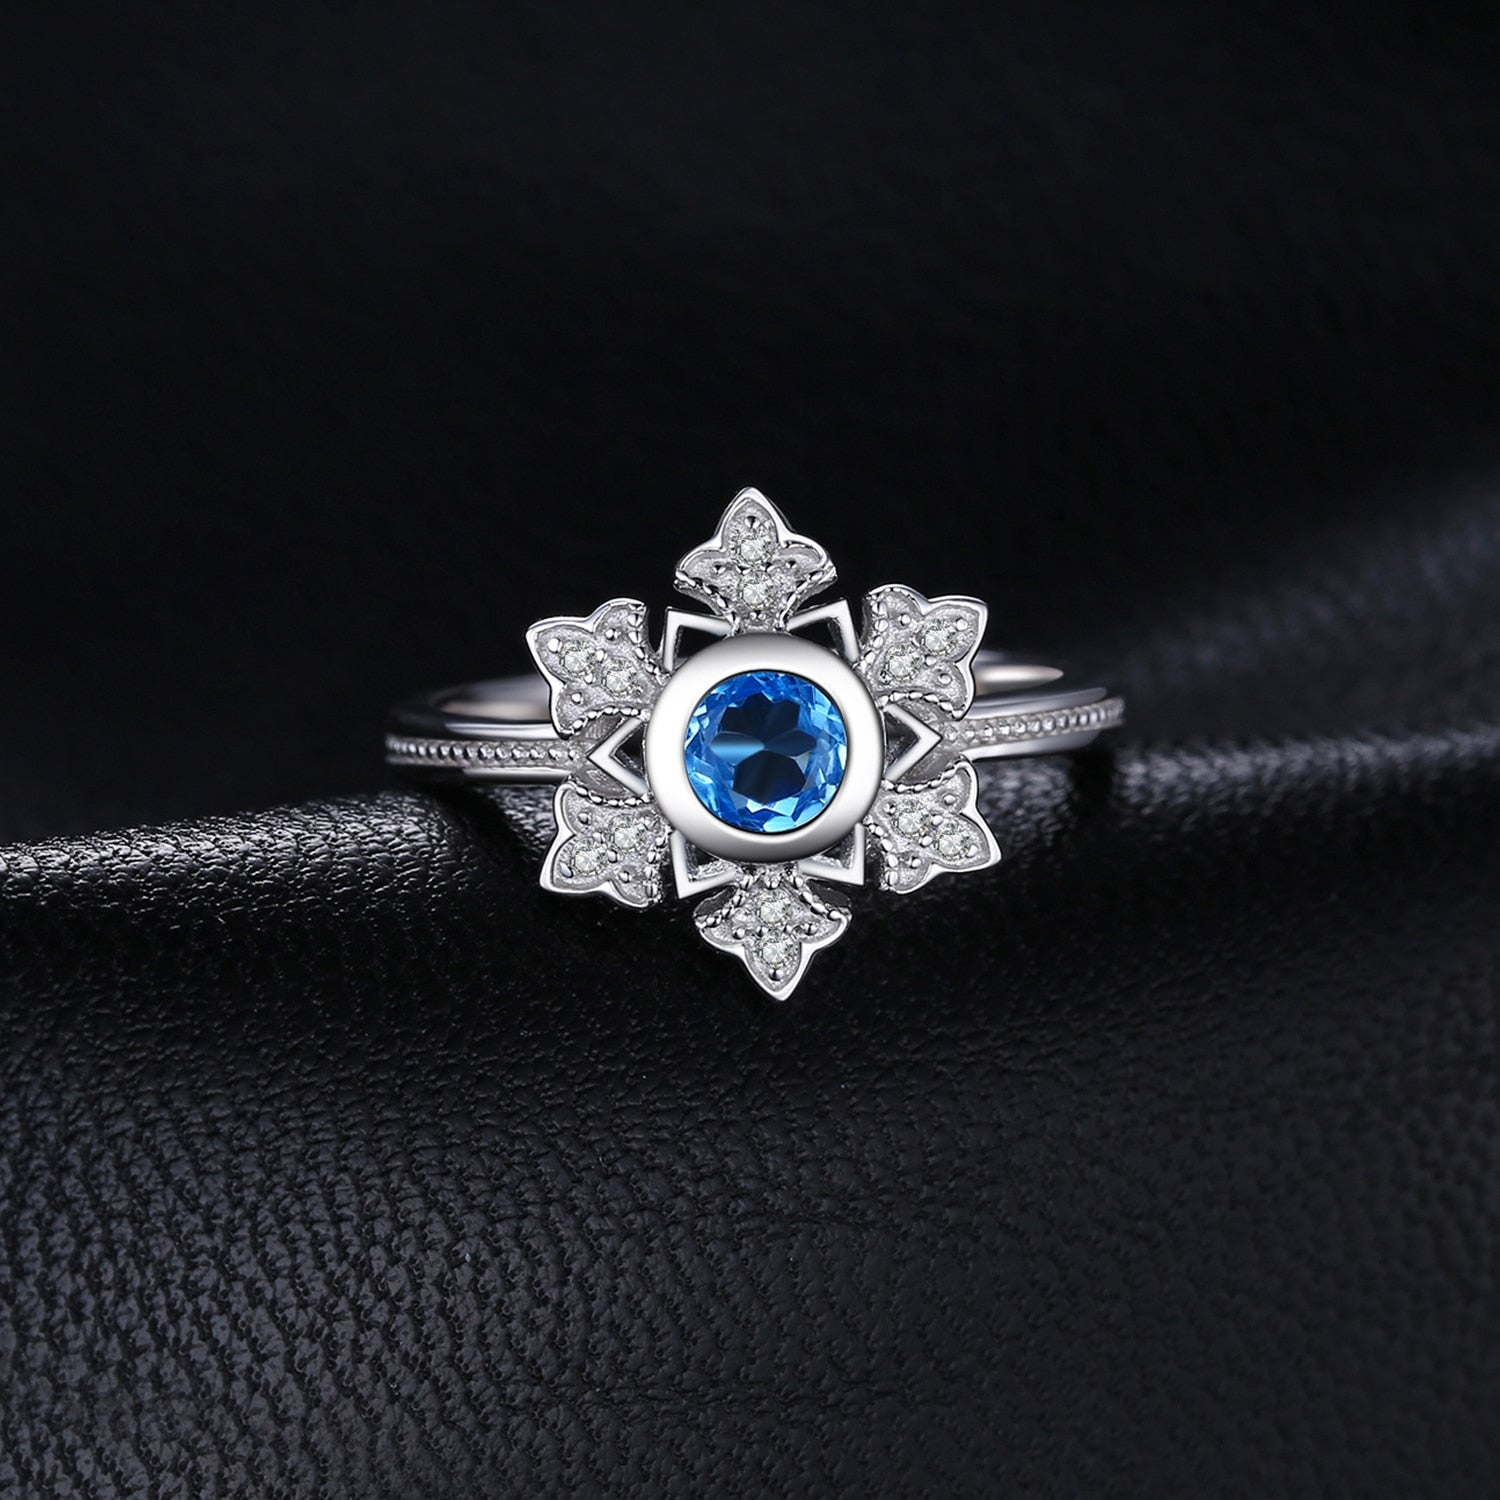 Snowflake Genuine  Blue Topaz Cocktail Ring  Elegant Gift - BEAUVAN